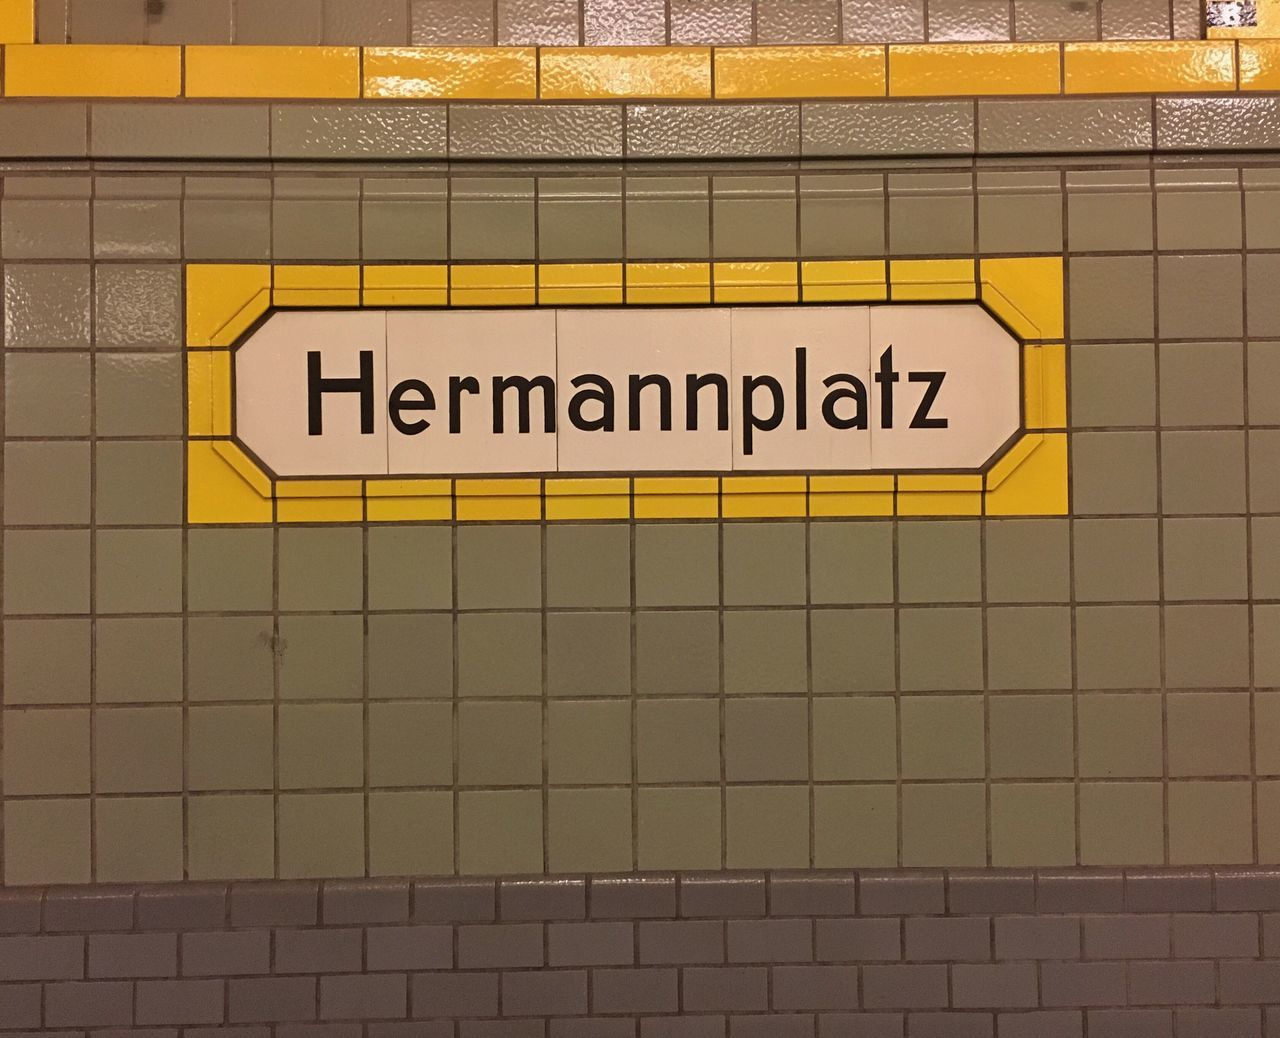 Yellow Text Communication Urban Geometry Berlin Berliner Ansichten U Bahn U Bahnhof U-Bahn Subway Subway Station Hermannplatz Tiles Tiled Wall